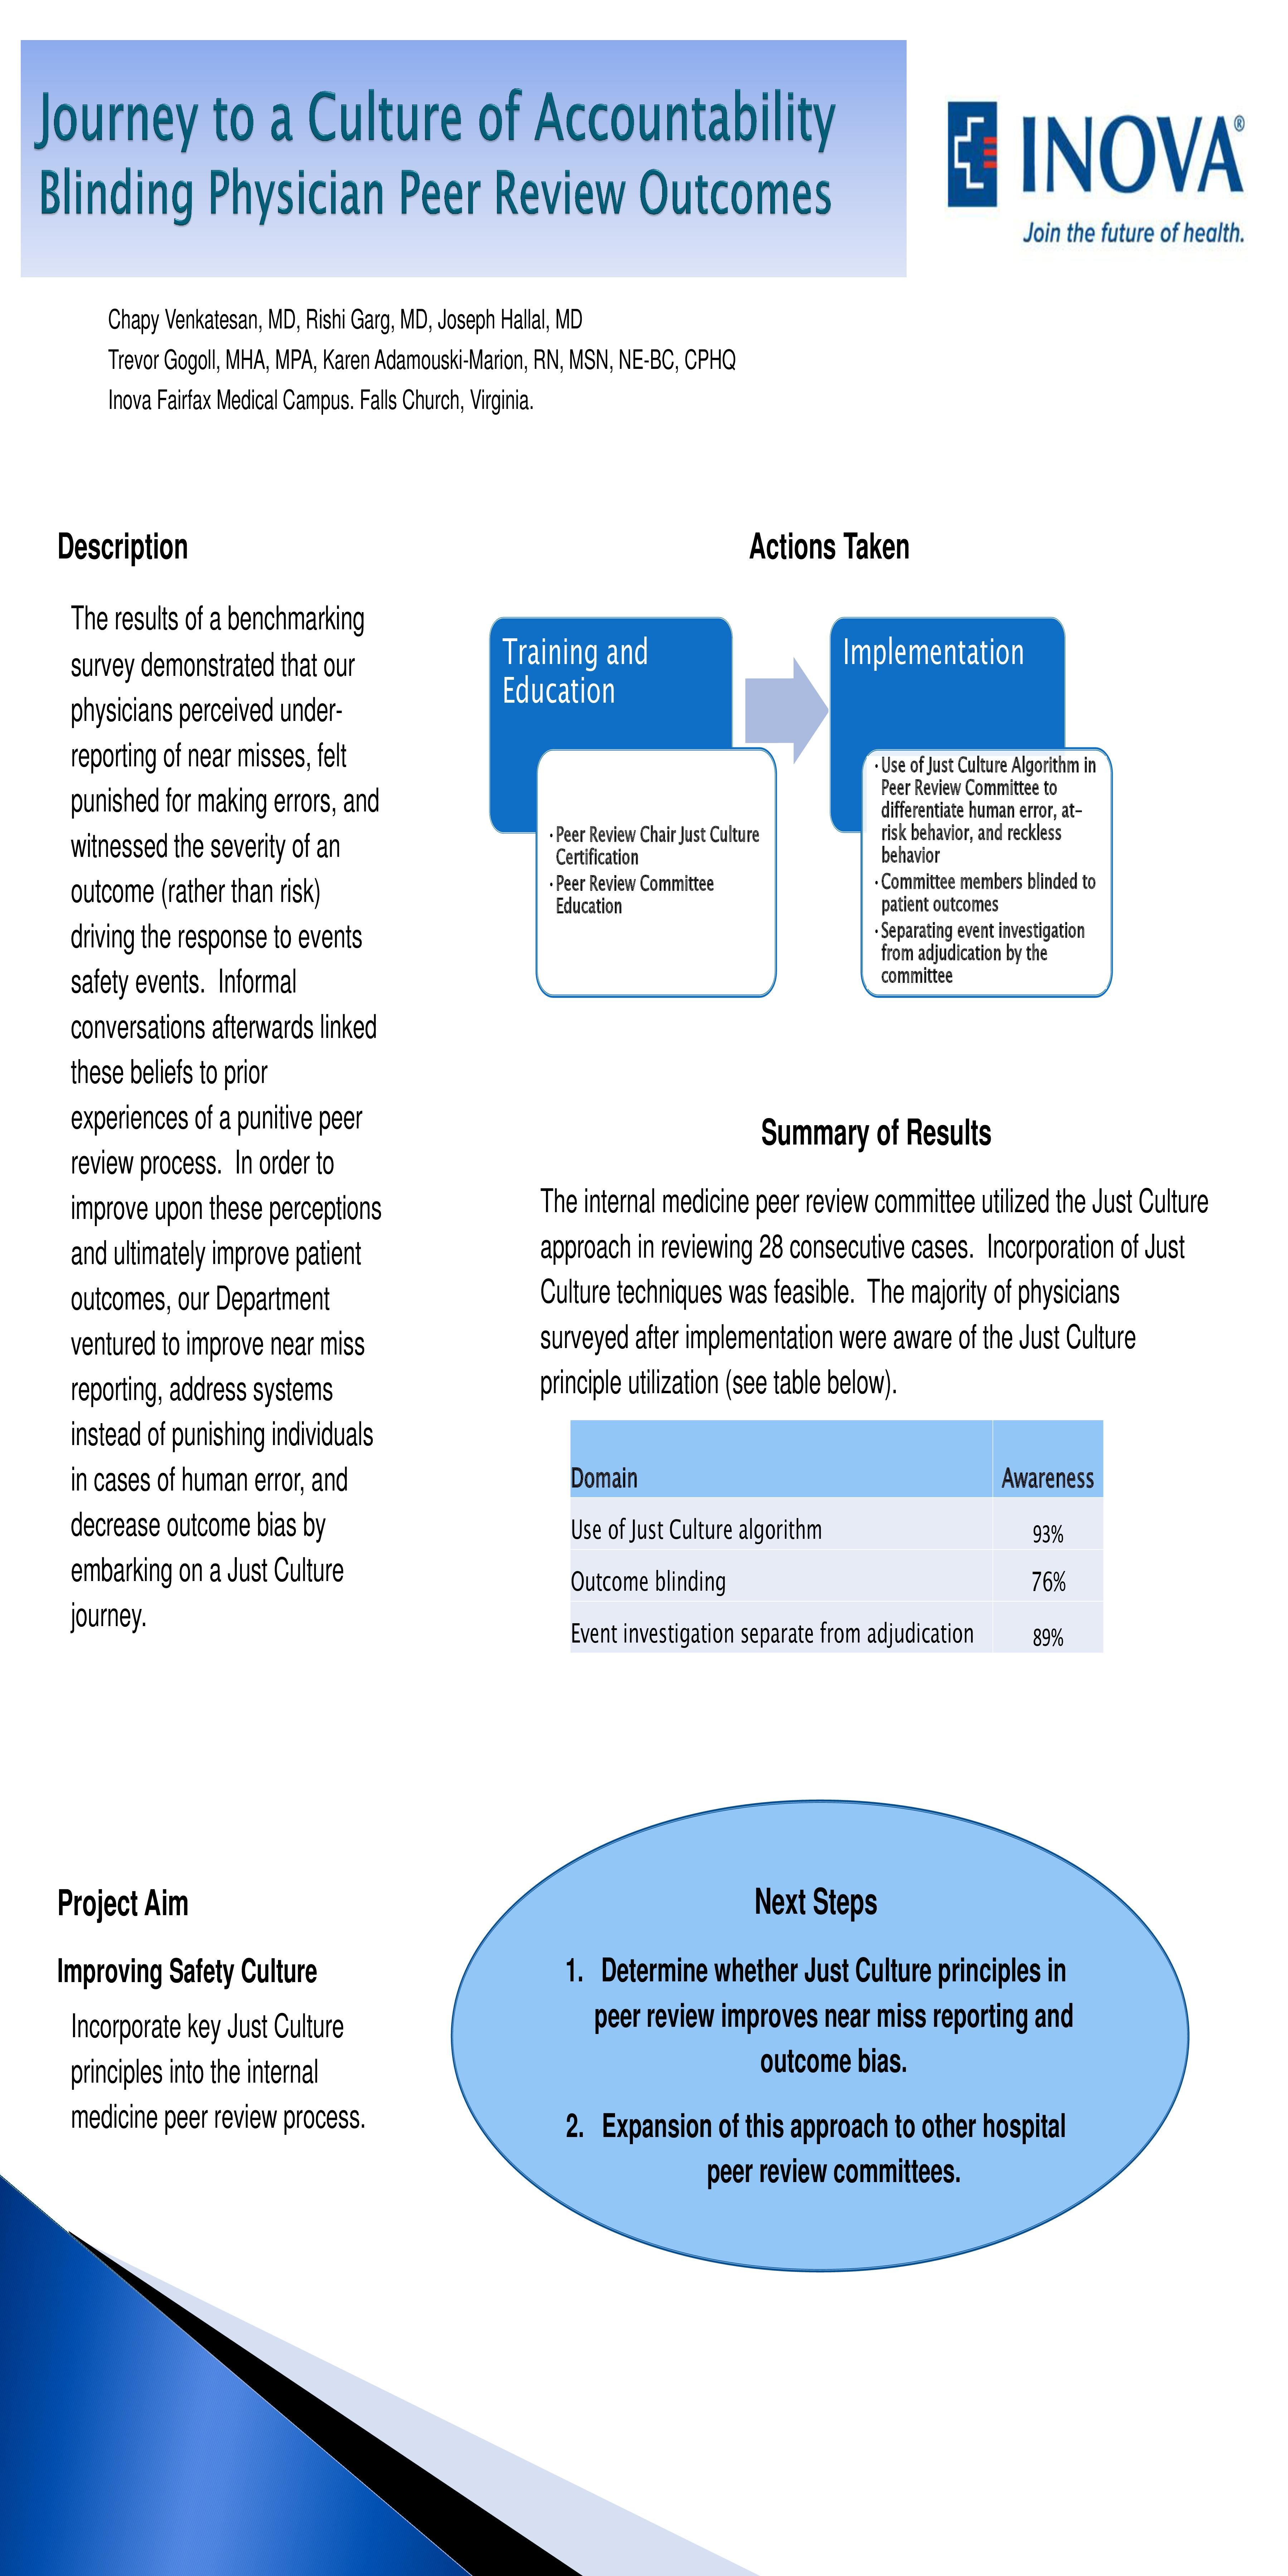 drivers of risk in healthcare Issue brief: health care cost drivers: chronic disease, comorbidity, and health risk factors in the us and michigan • july 2010 • 1 issue brief july 2010 center for healthcare research & transformation.